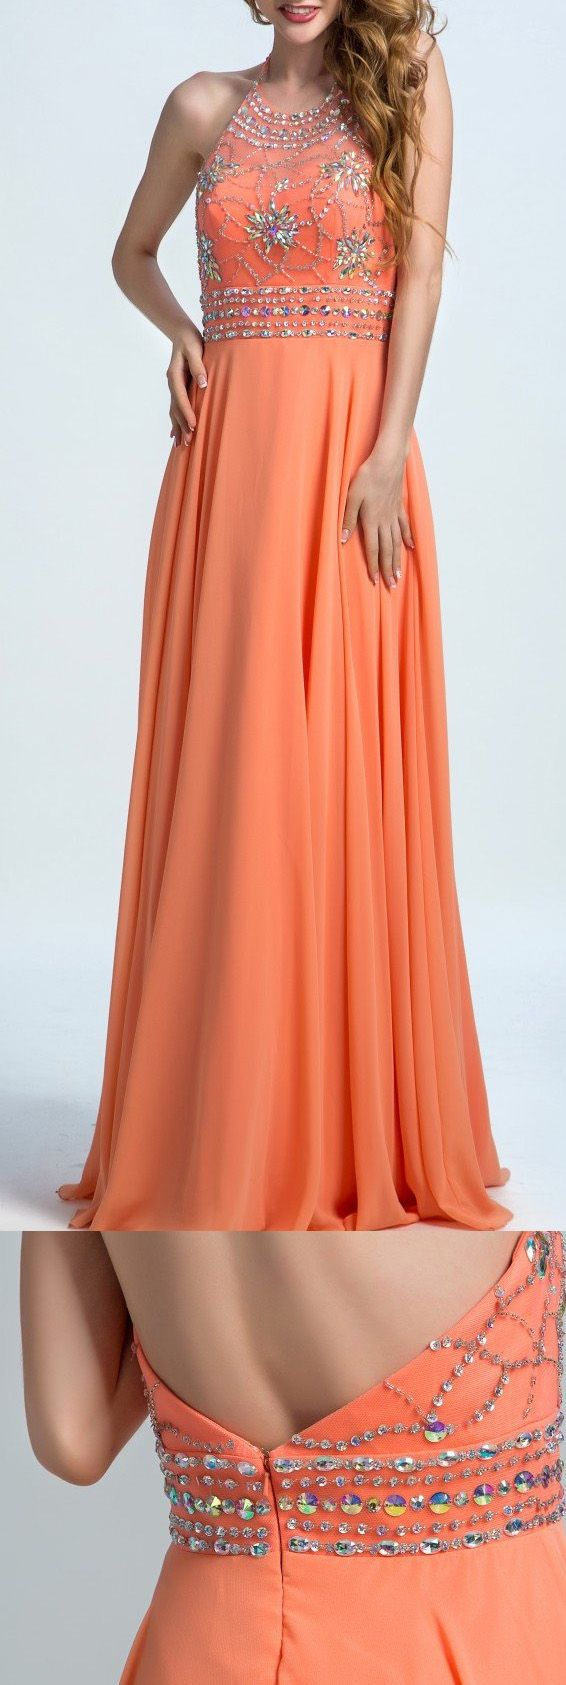 Hot sale coral alineprincess evening prom dresses absorbing long